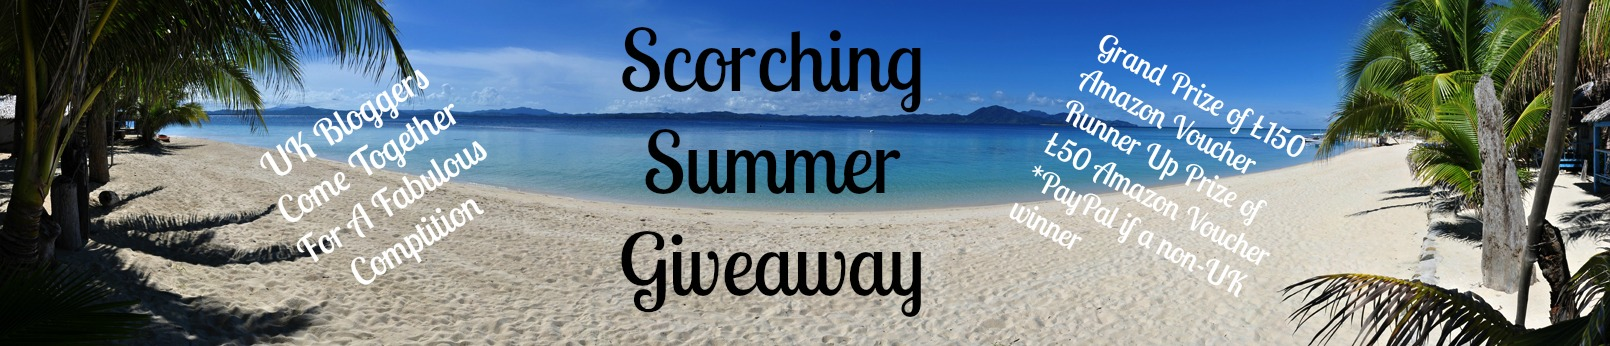 Scorching Summer Giveaway with UK Bloggers